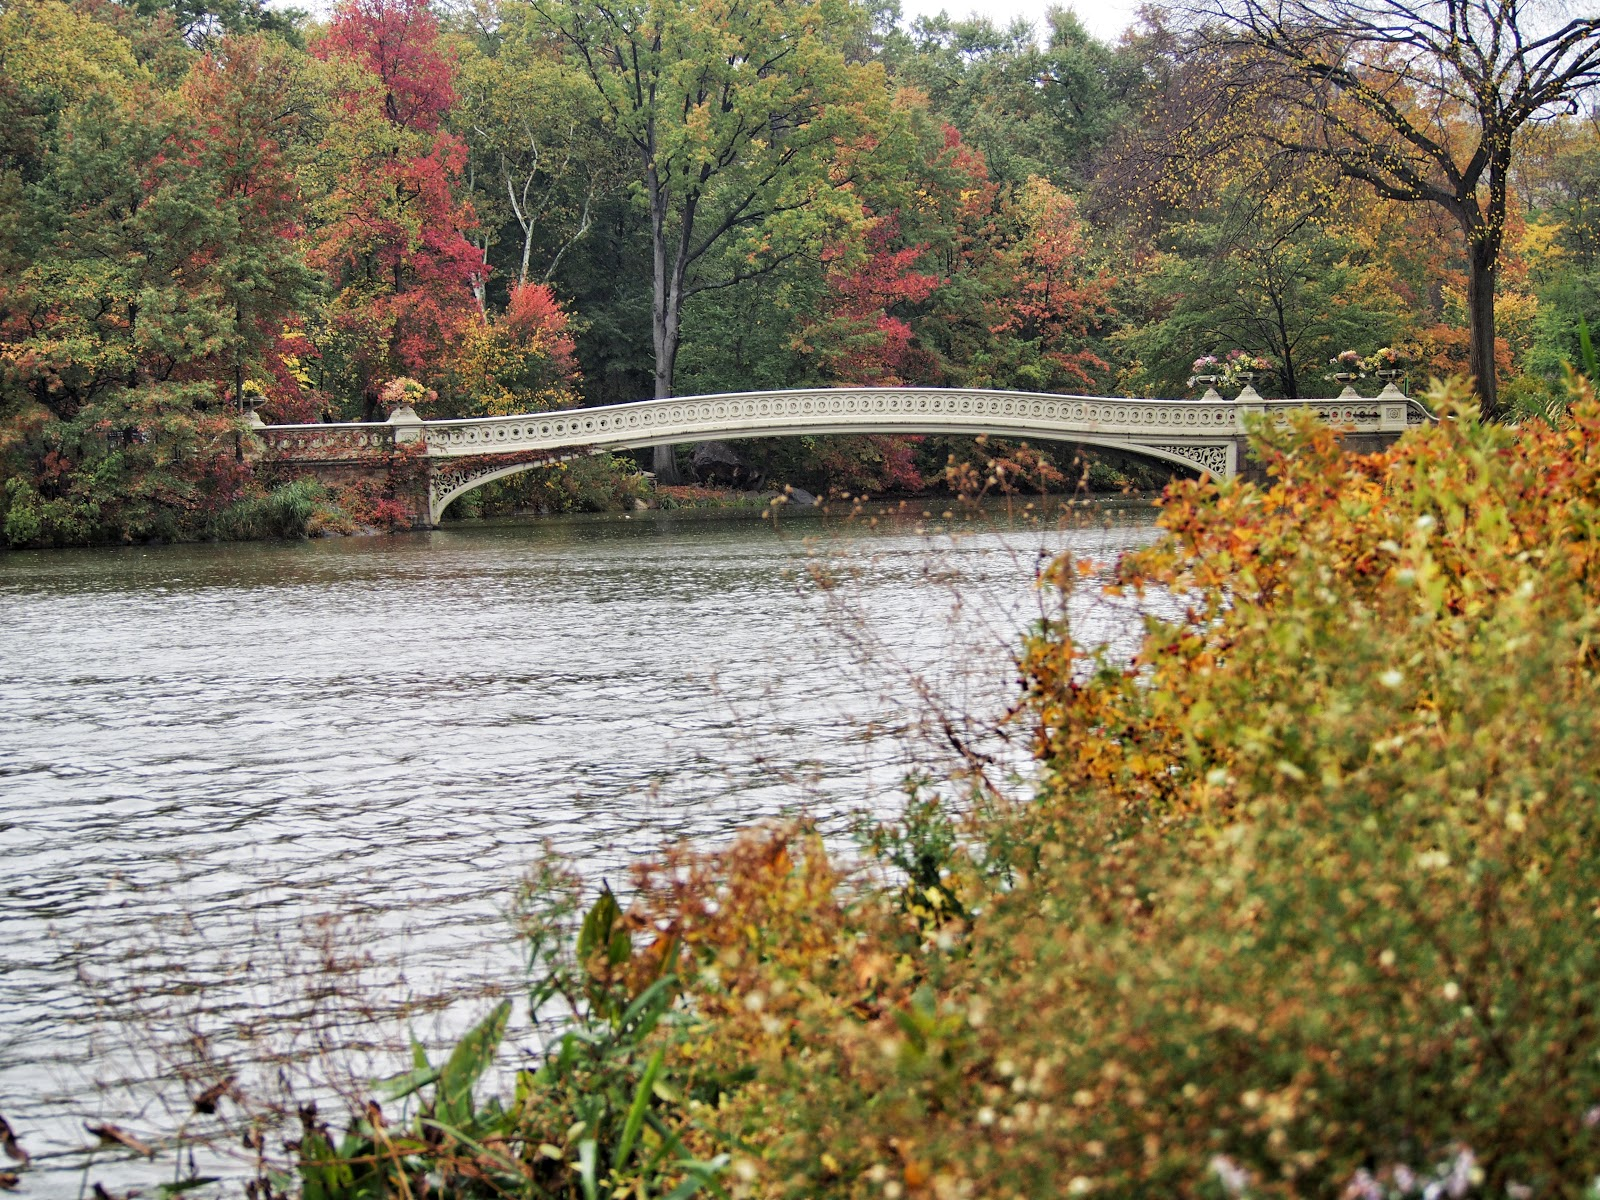 Bow Bridge, #emptybridge #bowbridge #centralpark #nyc #fall #fallfoliage #rainyday 2014